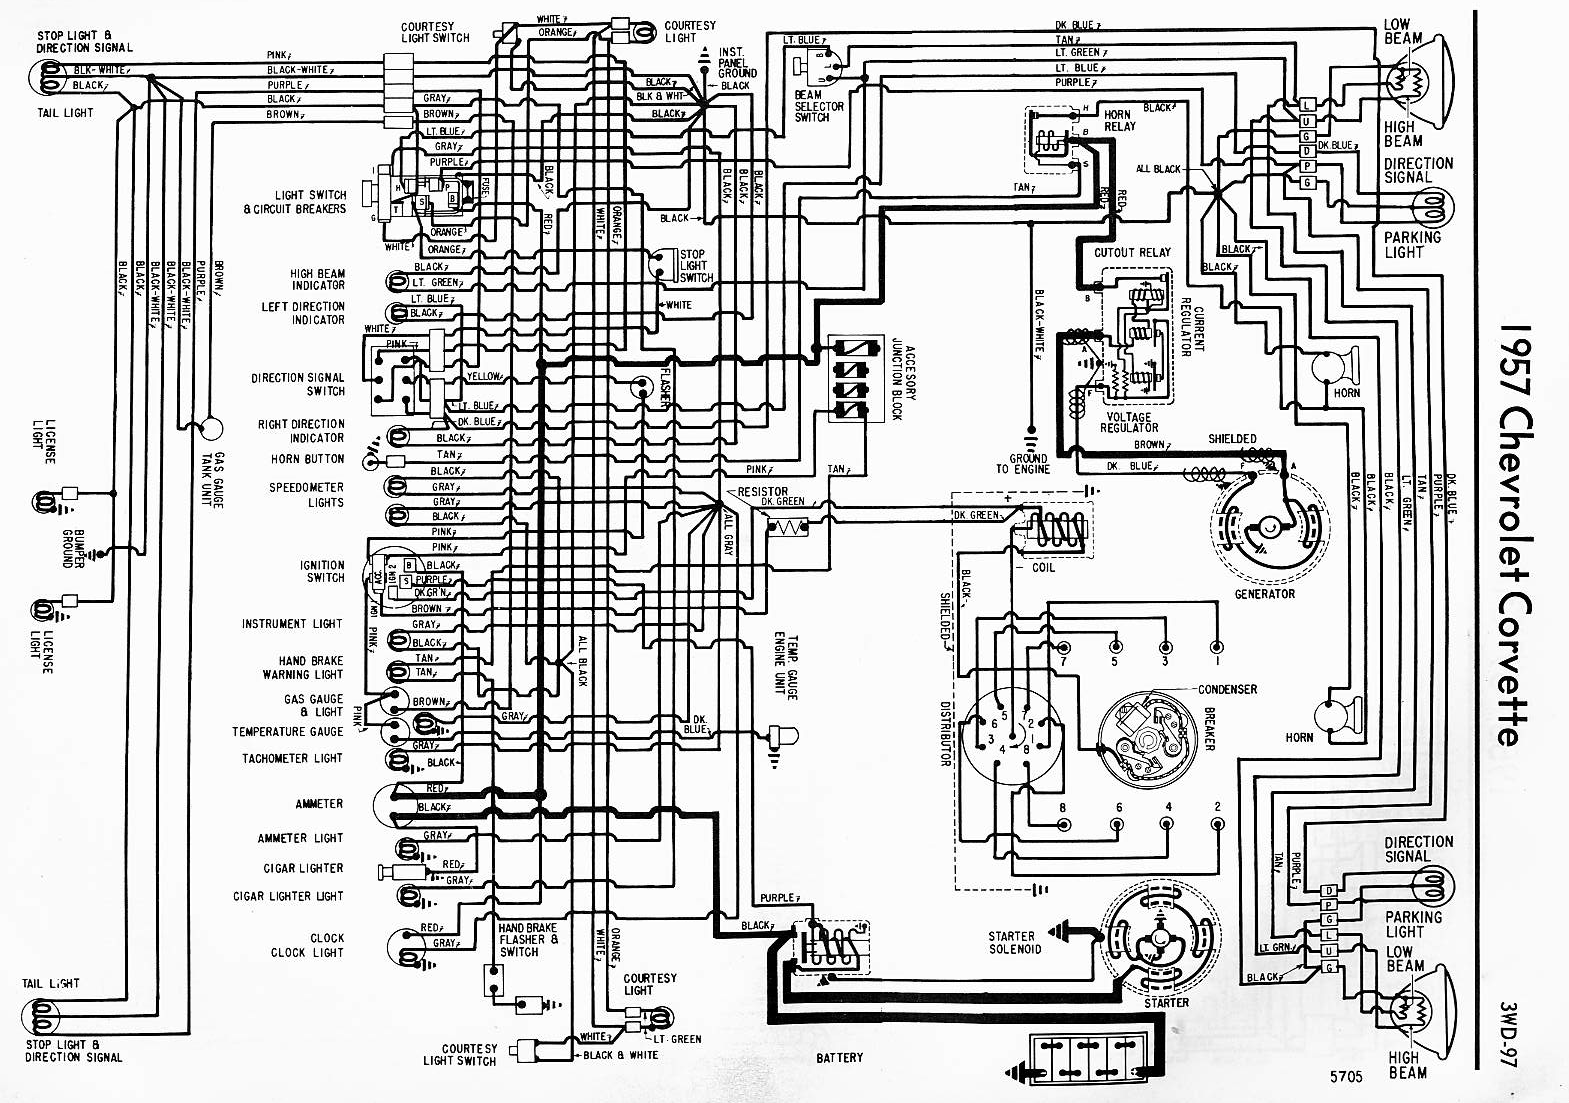 1986 corvette wiring diagram online schematic diagram u2022 rh holyoak co 87 corvette wiring diagram 86 corvette radio wiring diagram